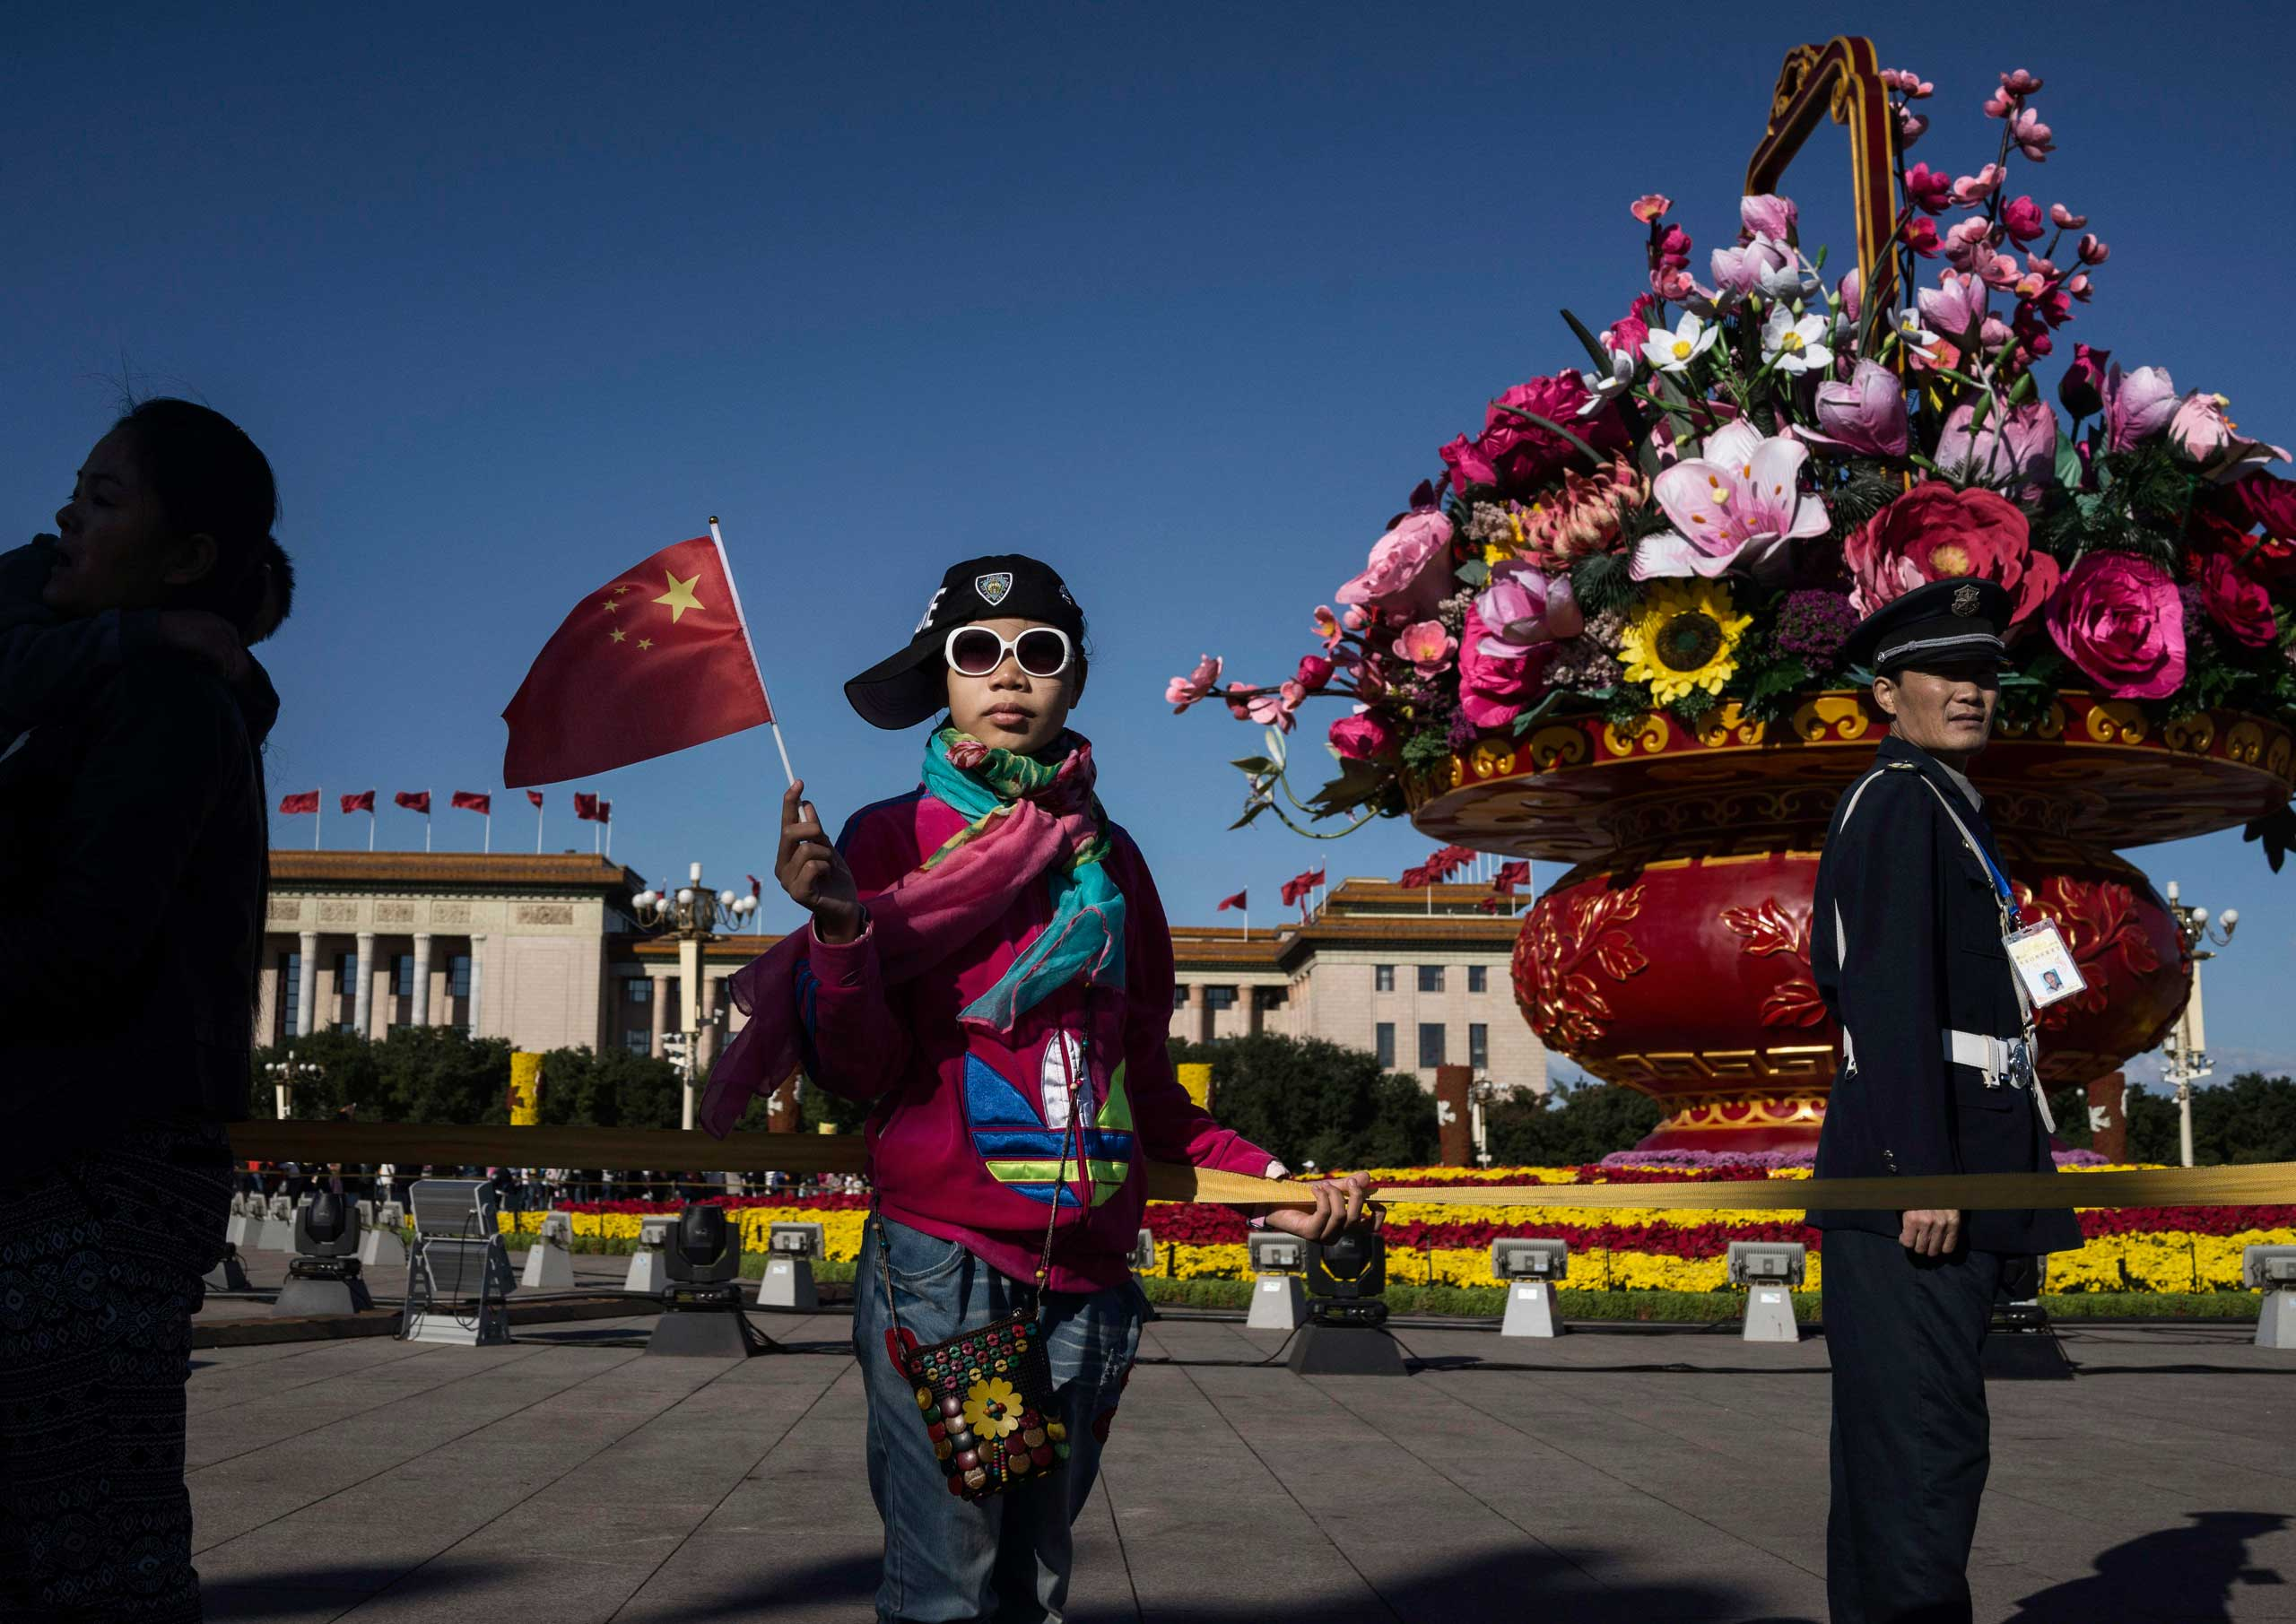 A girl poses in front of a large decorative flower arrangement after the official flag raising ceremony at Tiananmen Square to mark the 66th National Day in Beijing, on Oct. 1, 2015.